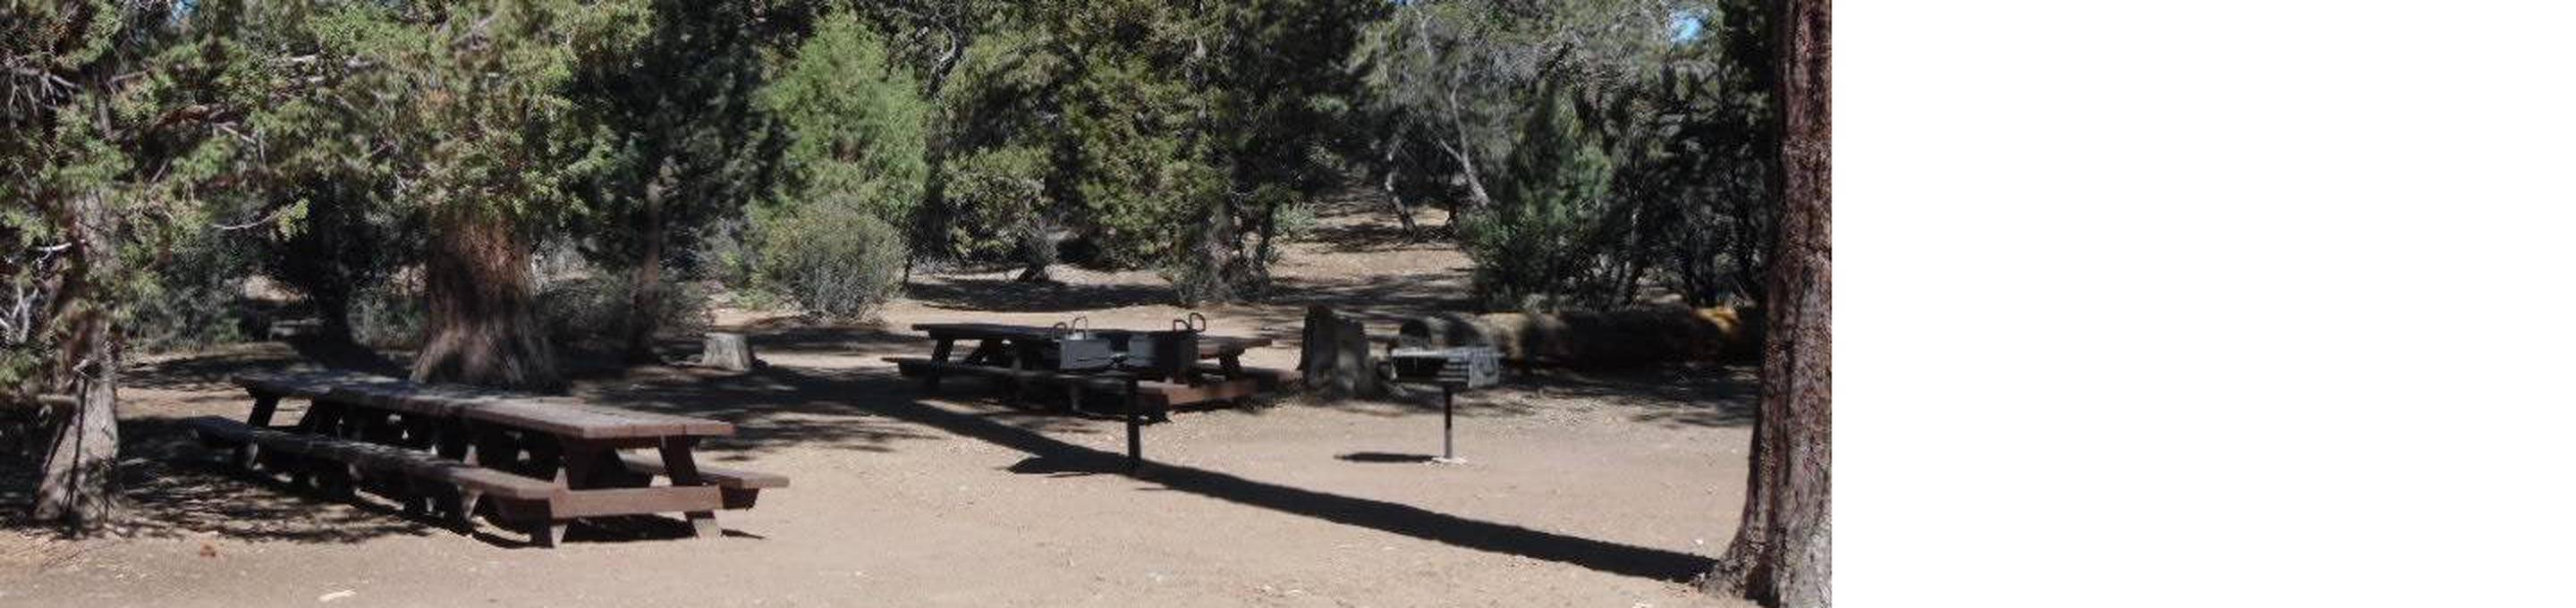 Picnic Tables and Group Fire Circle at Tanglewood Group Camp Sign